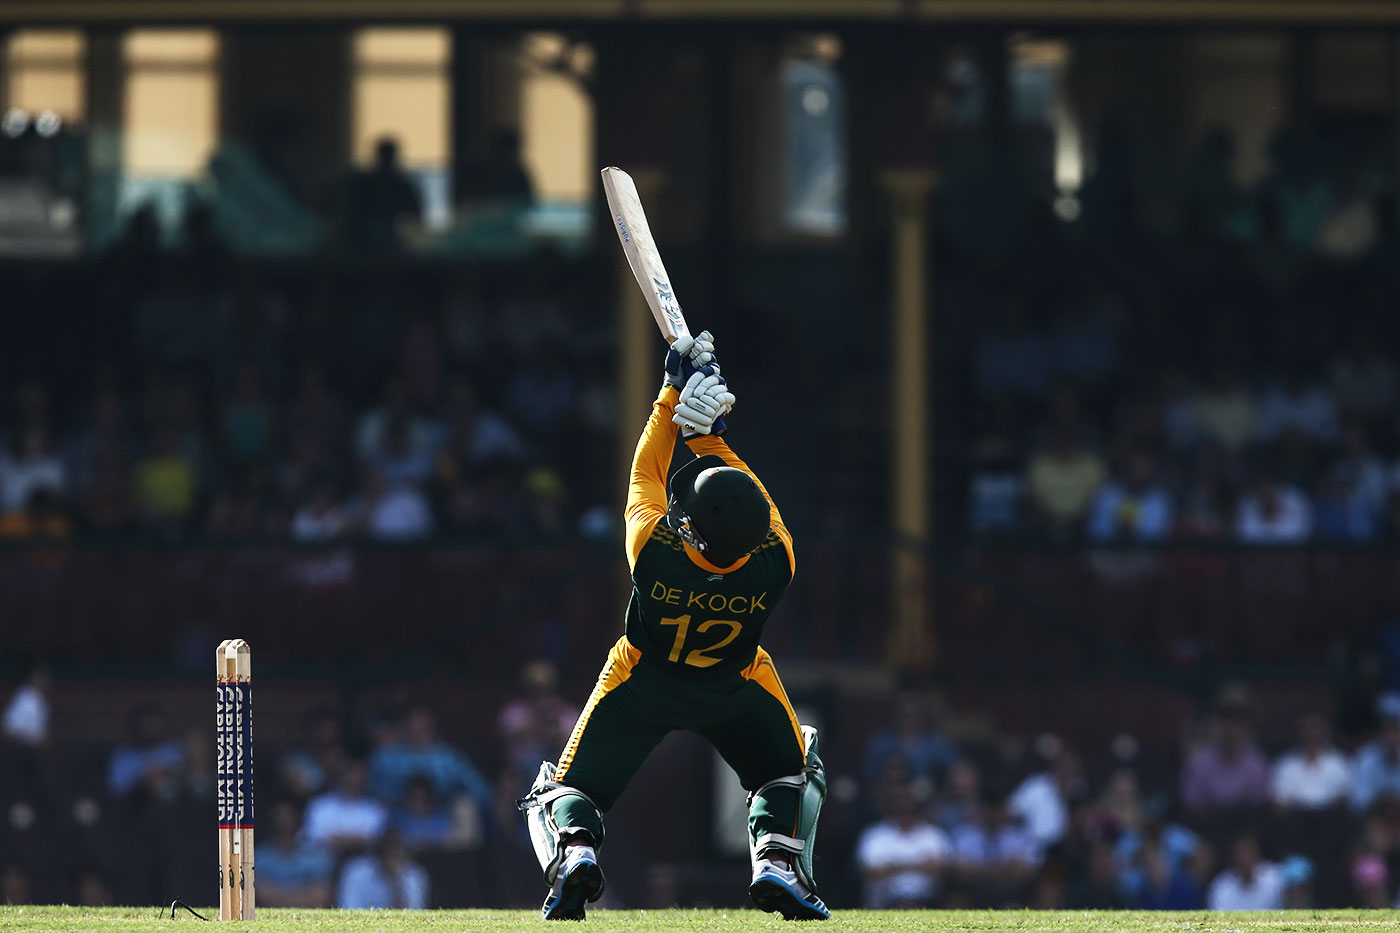 Quinton de Kock bends over backwards to play a shot